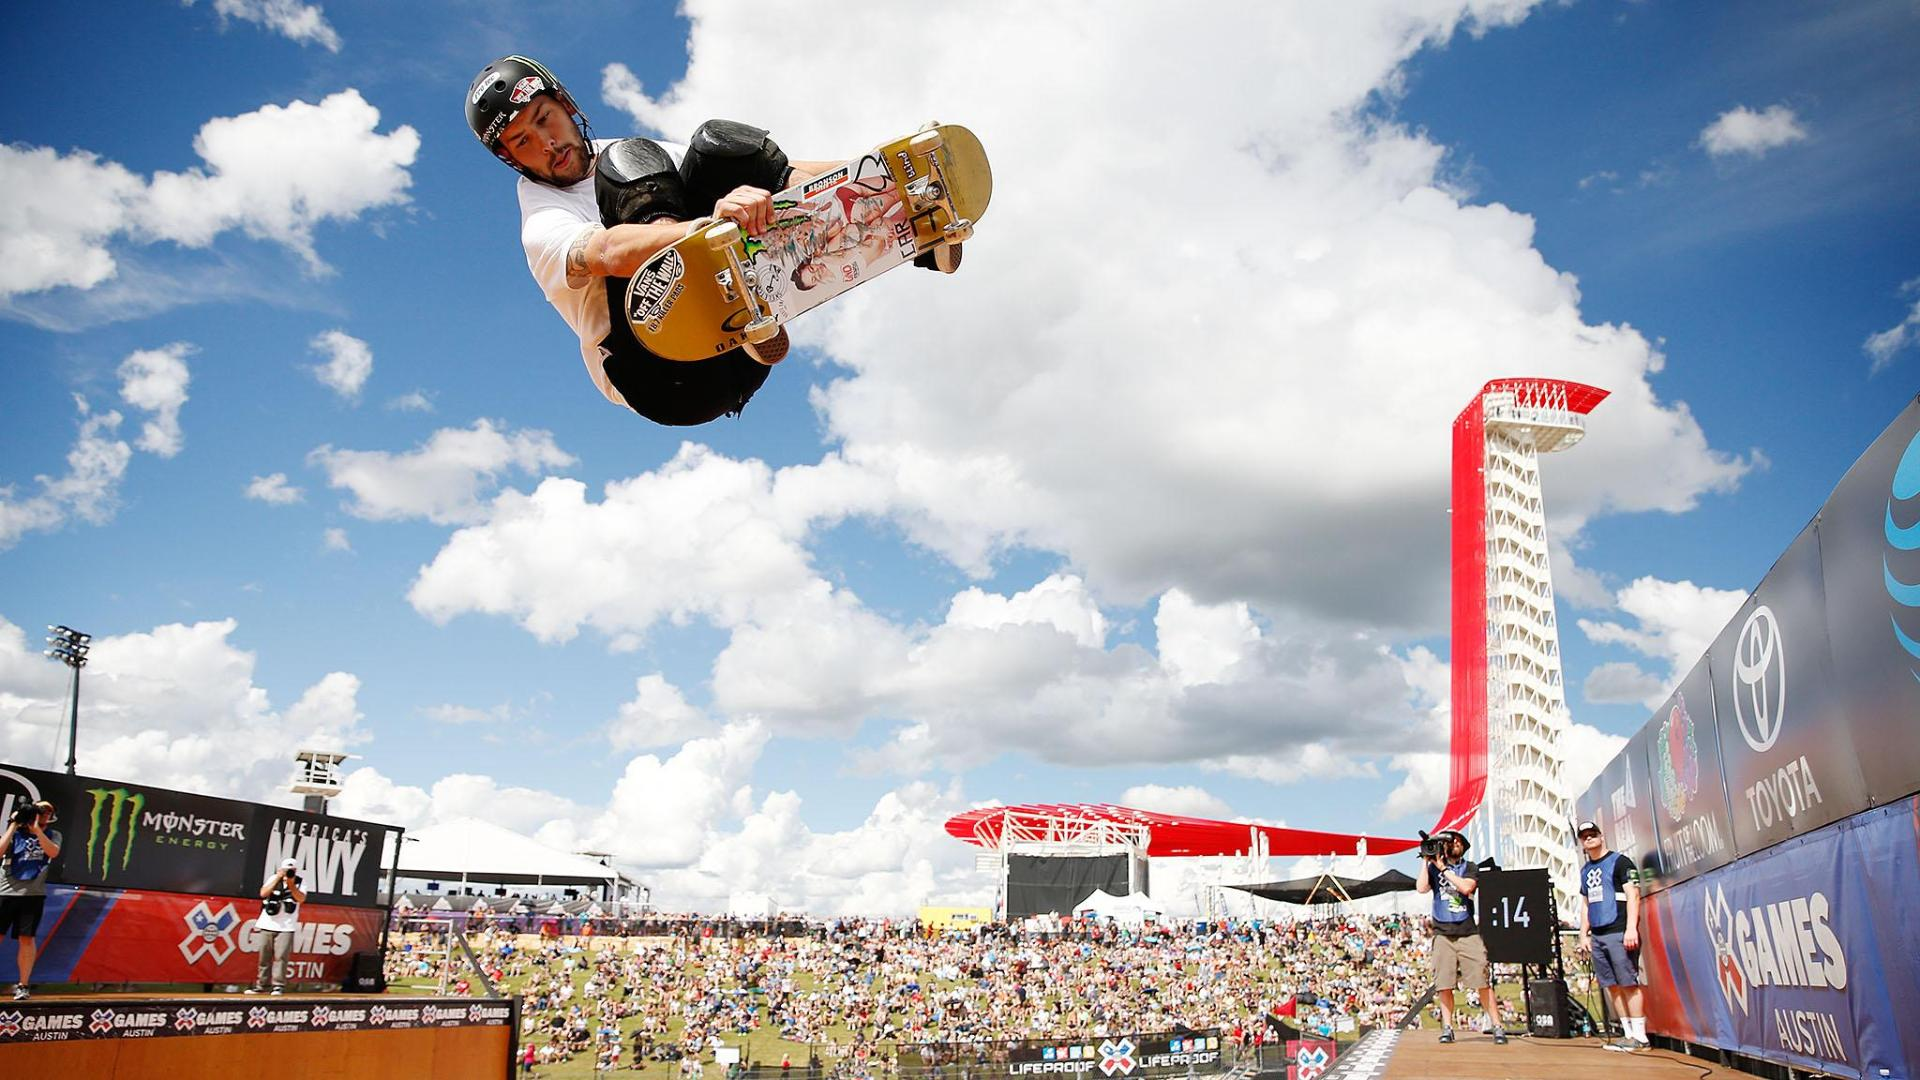 Roller skating x games - Captions Preview